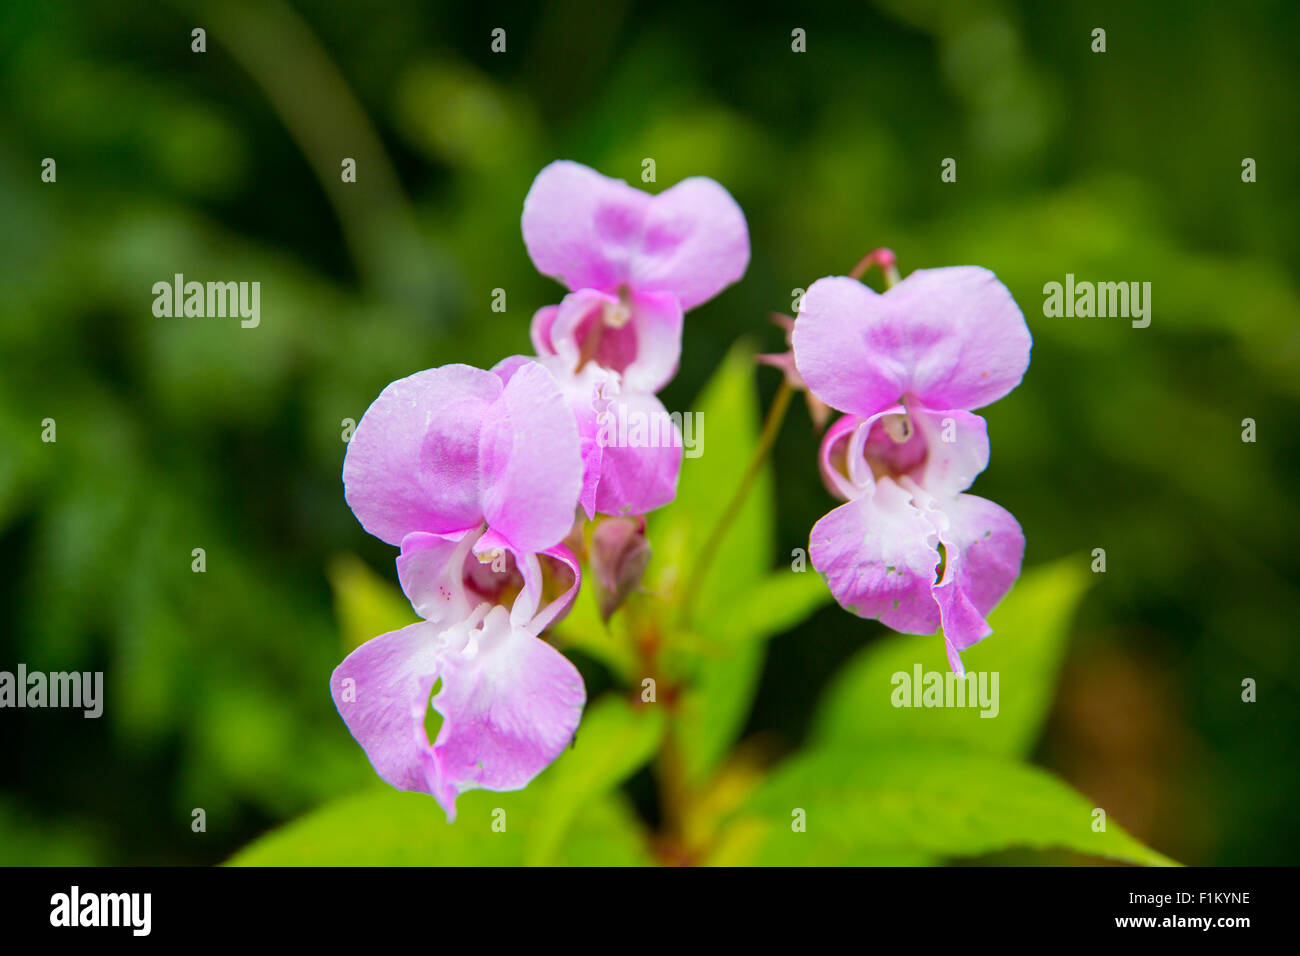 Close up photograph of Himalayan Balsam pink flowers in full bloom. Stock Photo